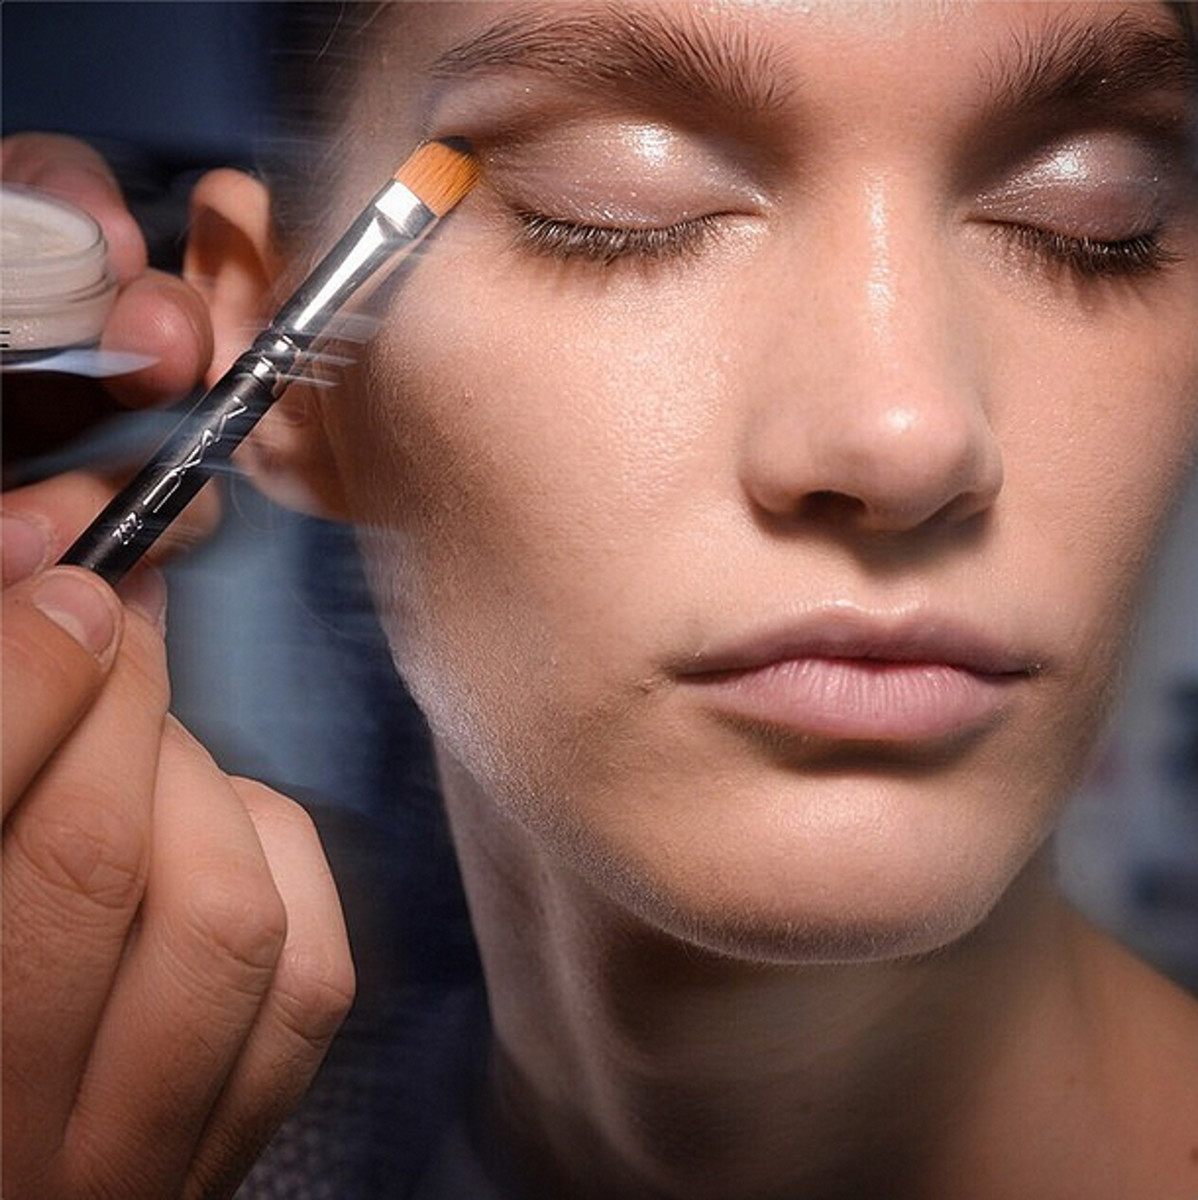 MAC Instant Artistry Toronto: Learn from Backstage Pros October 15 to 19 - Beautygeeks